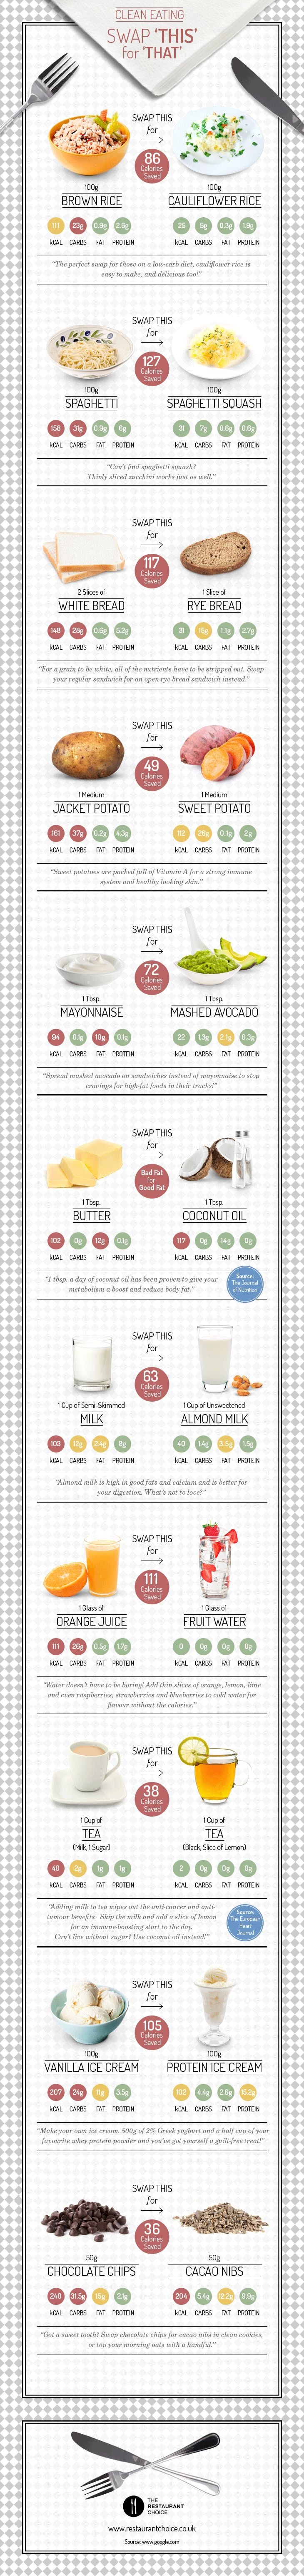 Clean Eating - Swap 'This' For 'That' #infographic #Food #Health #Diet #HealthyFood